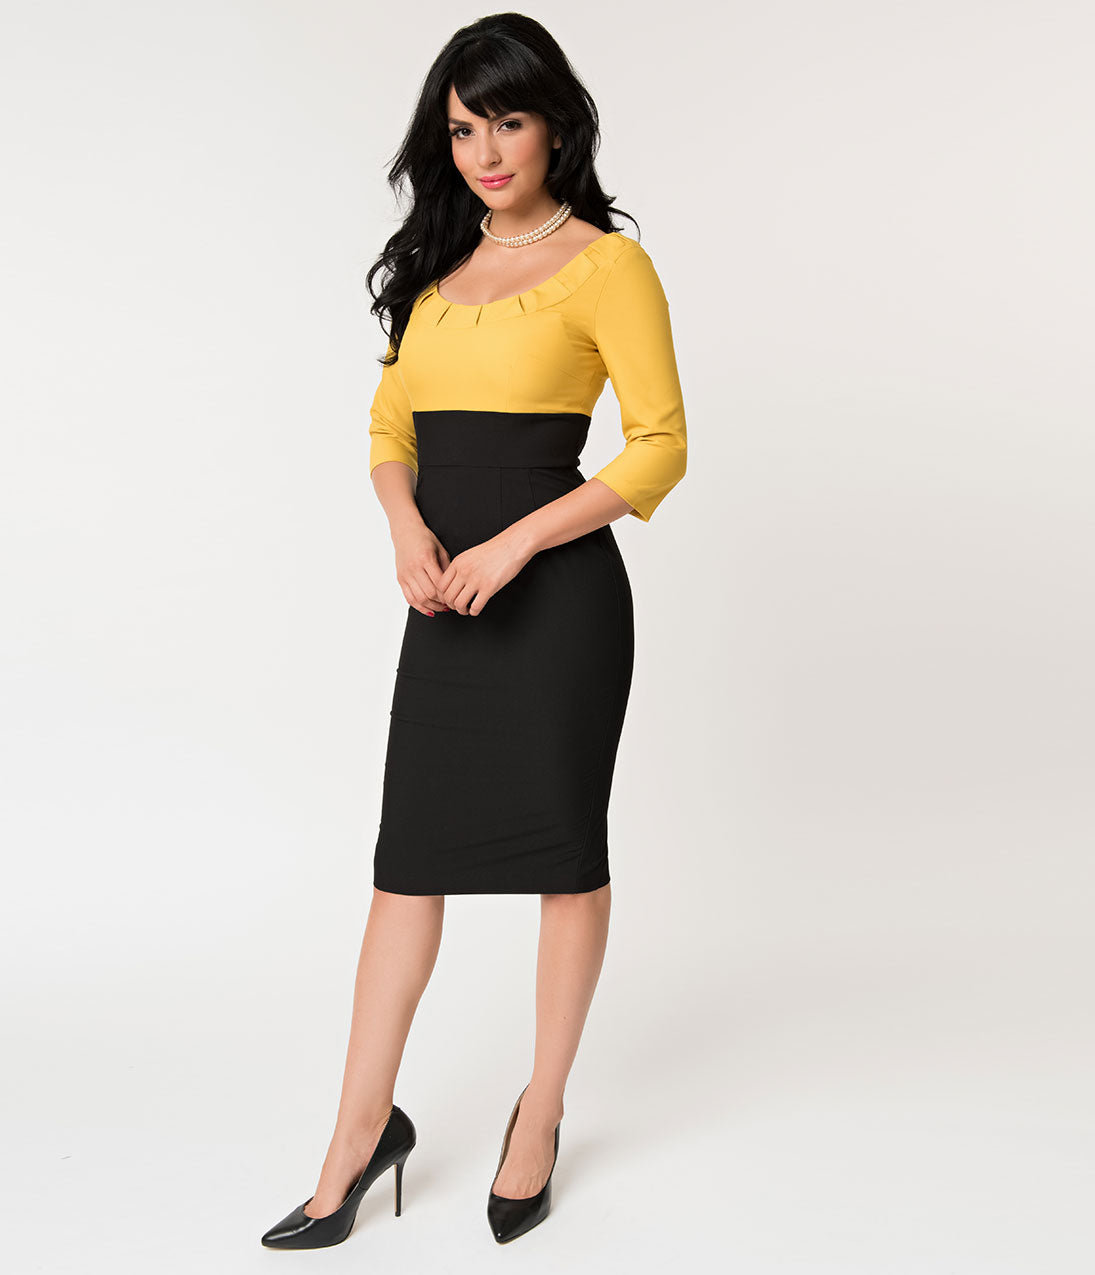 Wiggle Dresses   Pencil Dresses 40s, 50s, 60s Glamour Bunny 1950S Style Yellow And Black Christine Pencil Dress $134.00 AT vintagedancer.com